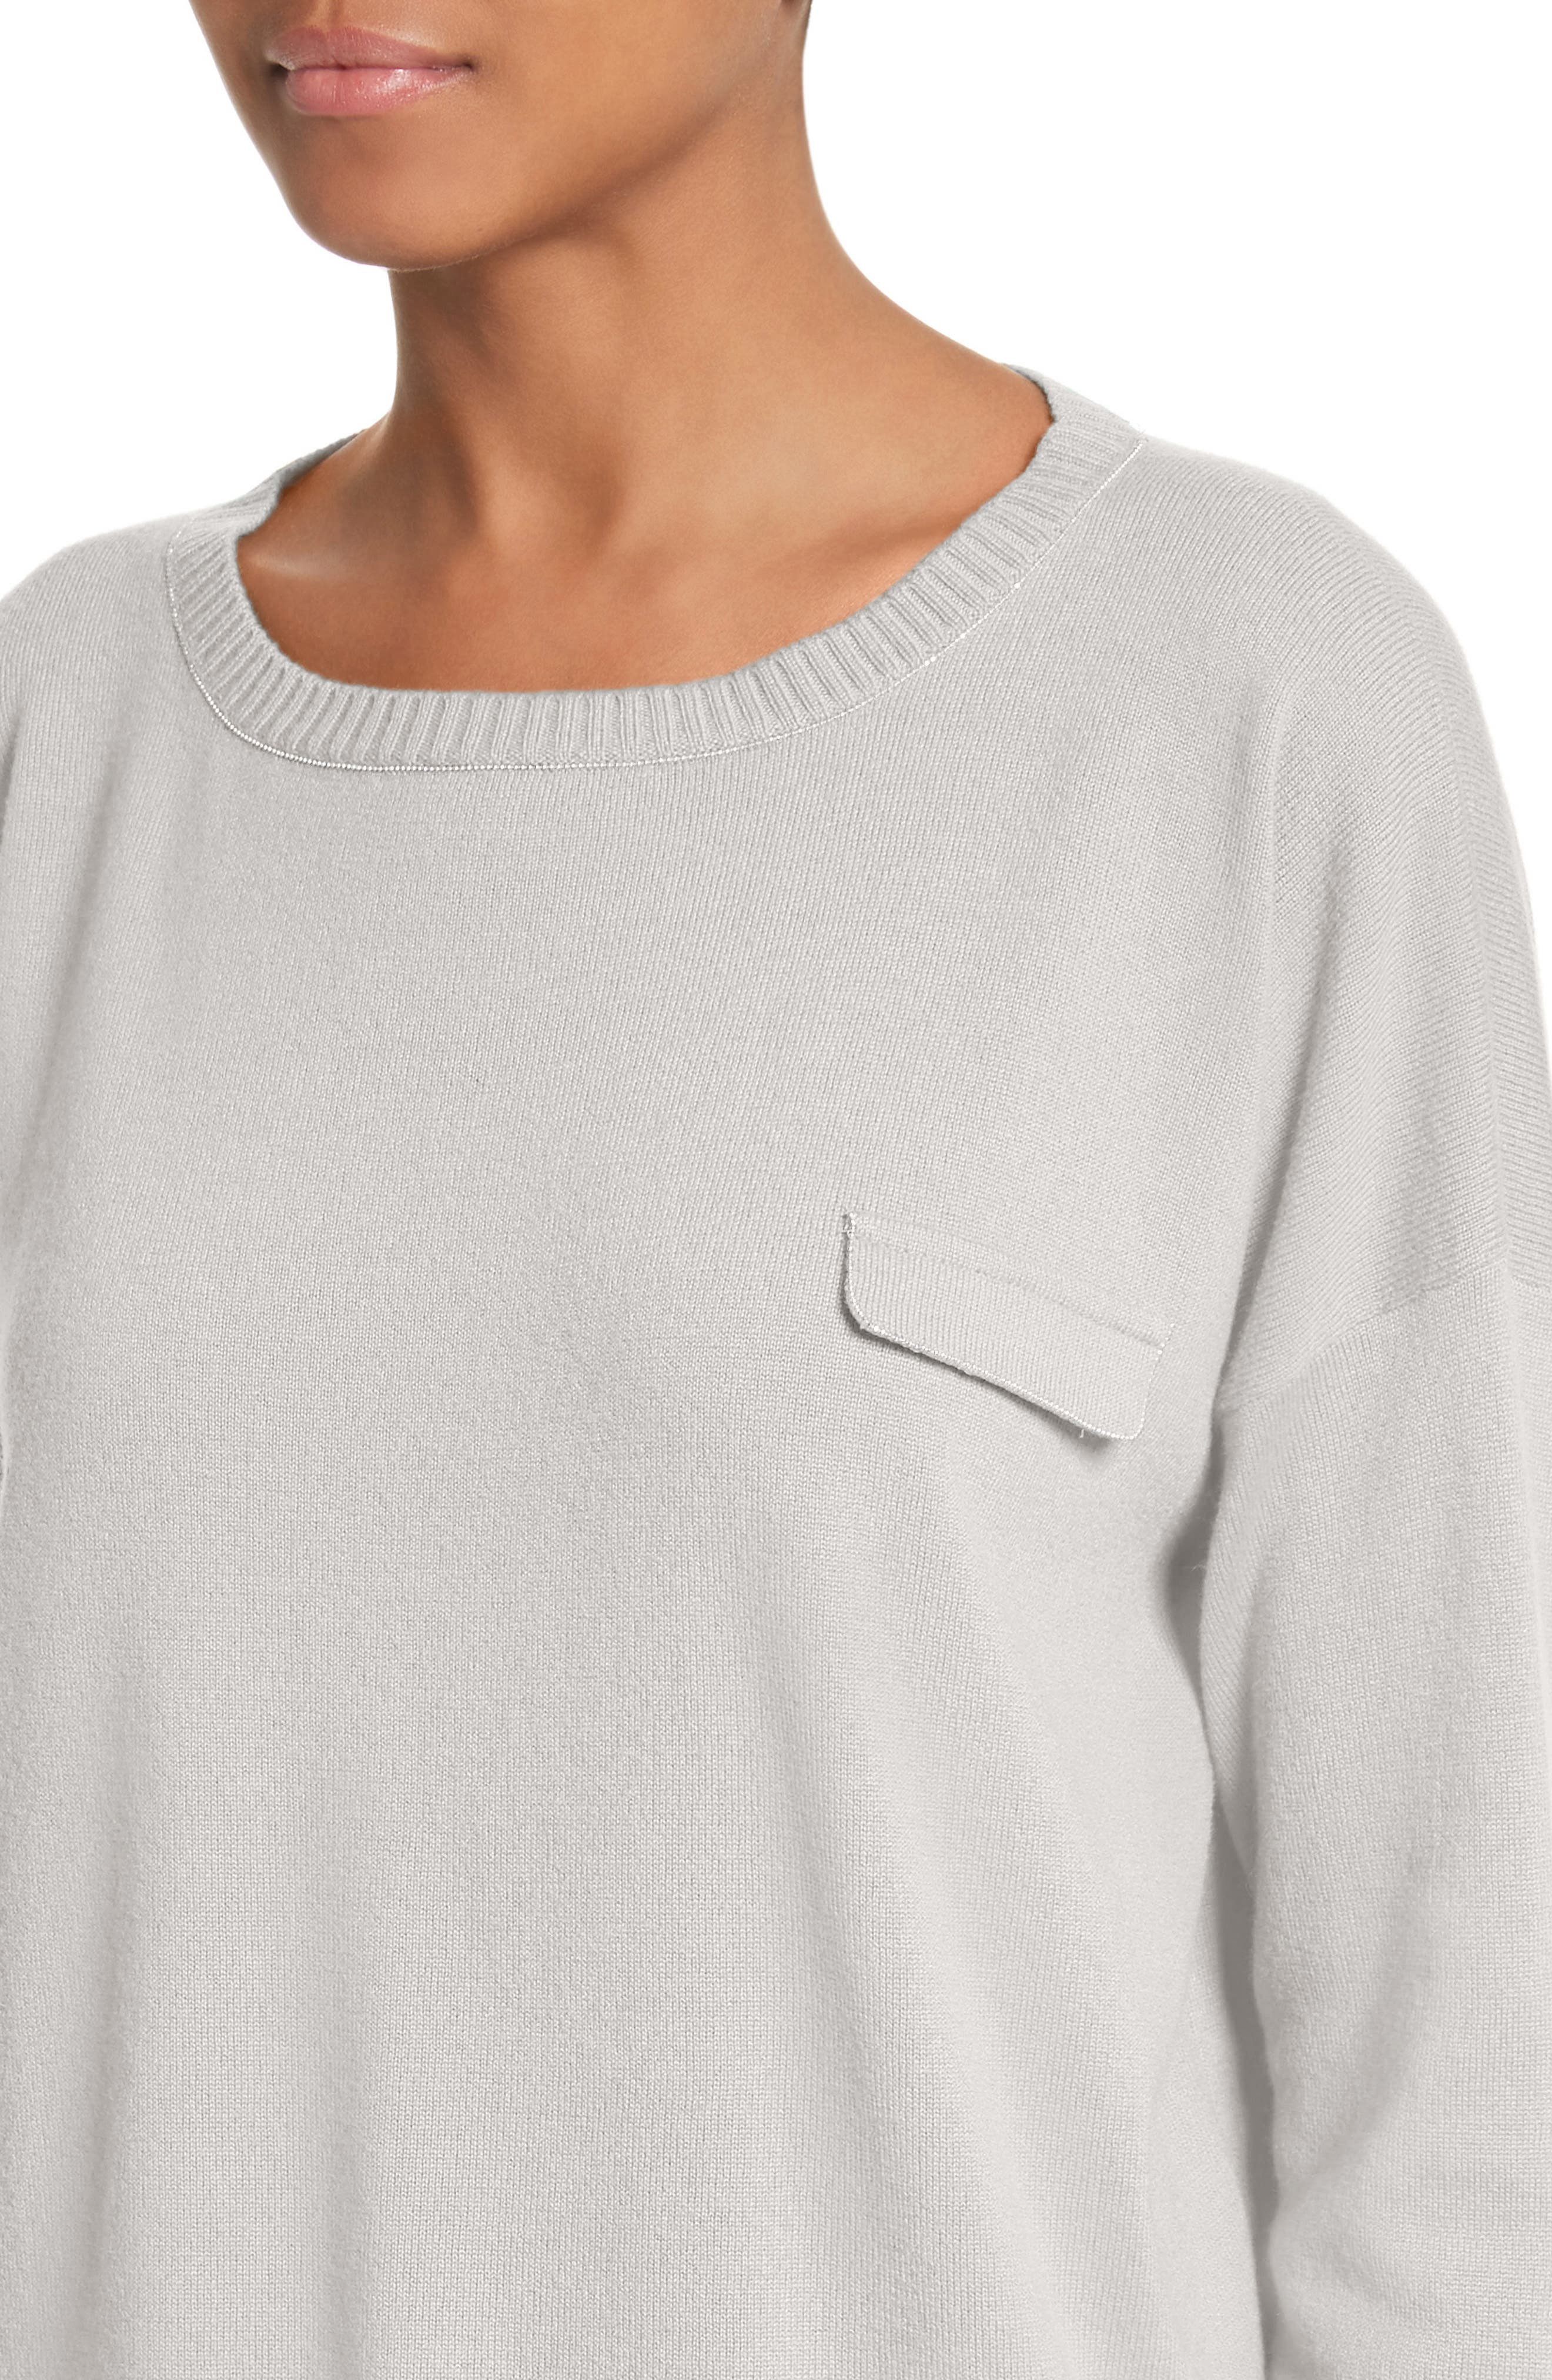 Beaded Cashmere Sweater,                             Alternate thumbnail 4, color,                             Grey